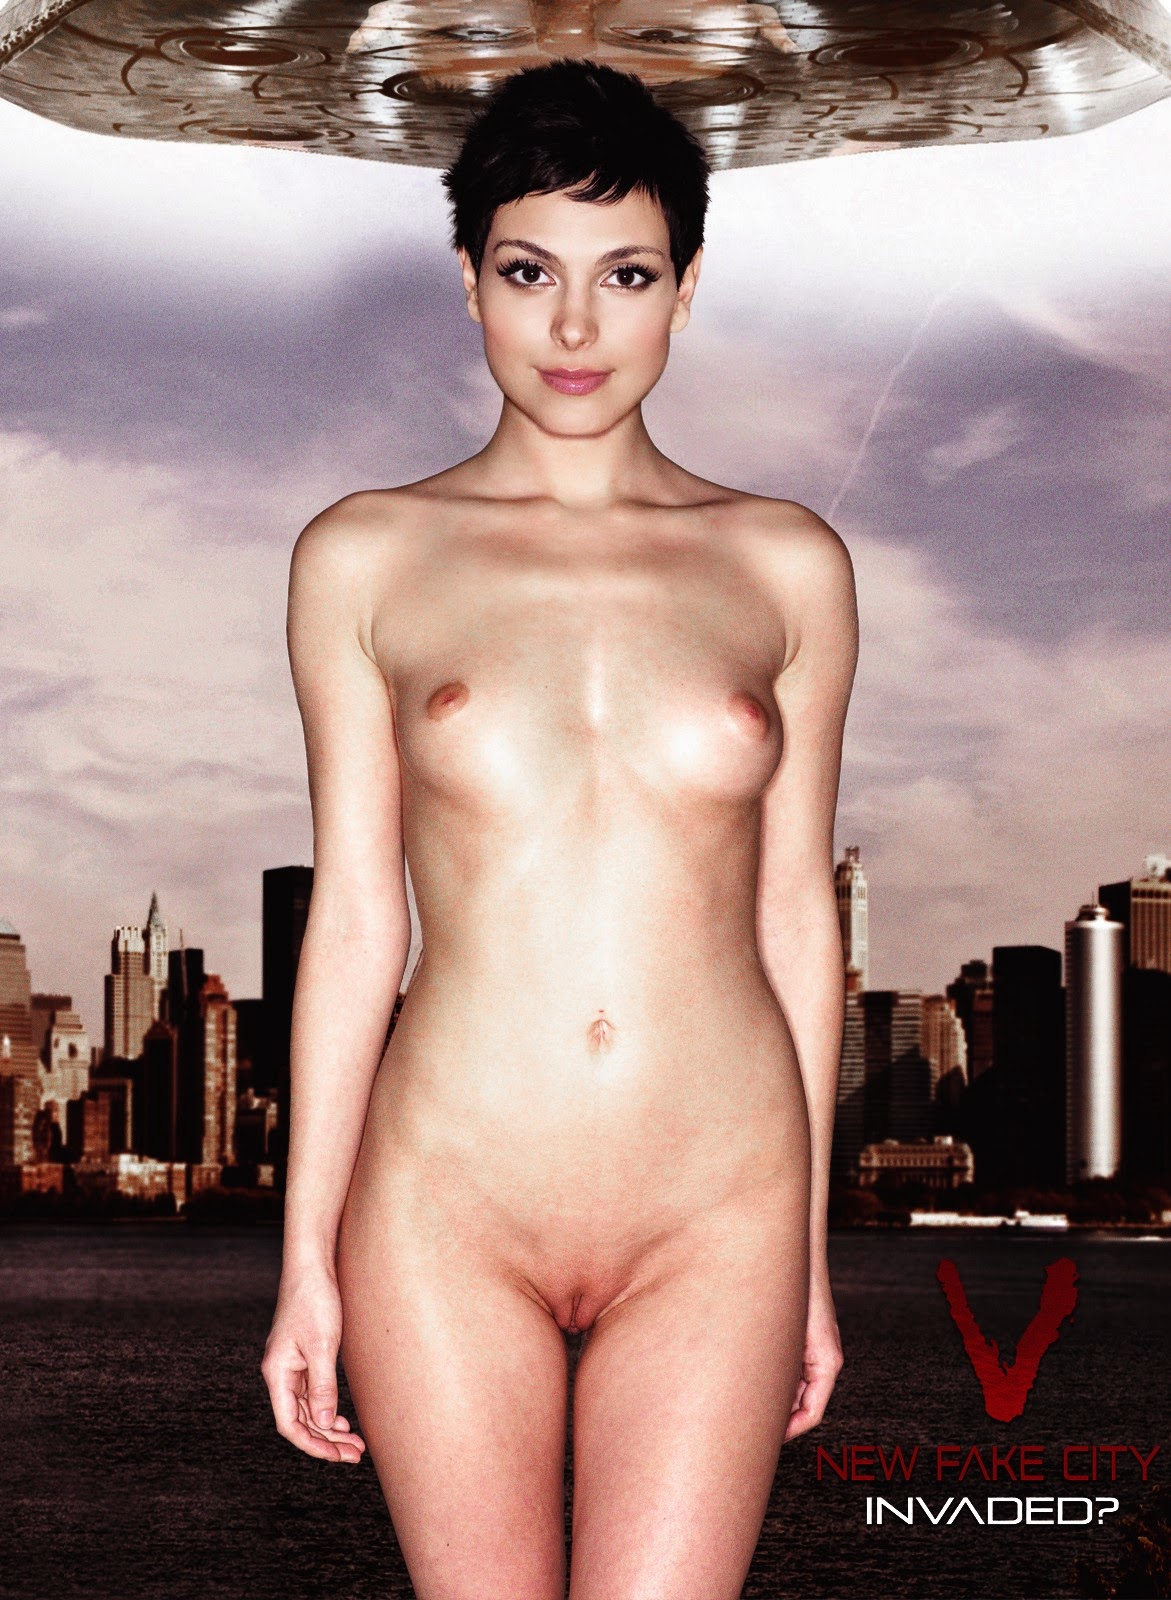 Morena Baccarin Nude Hot Images